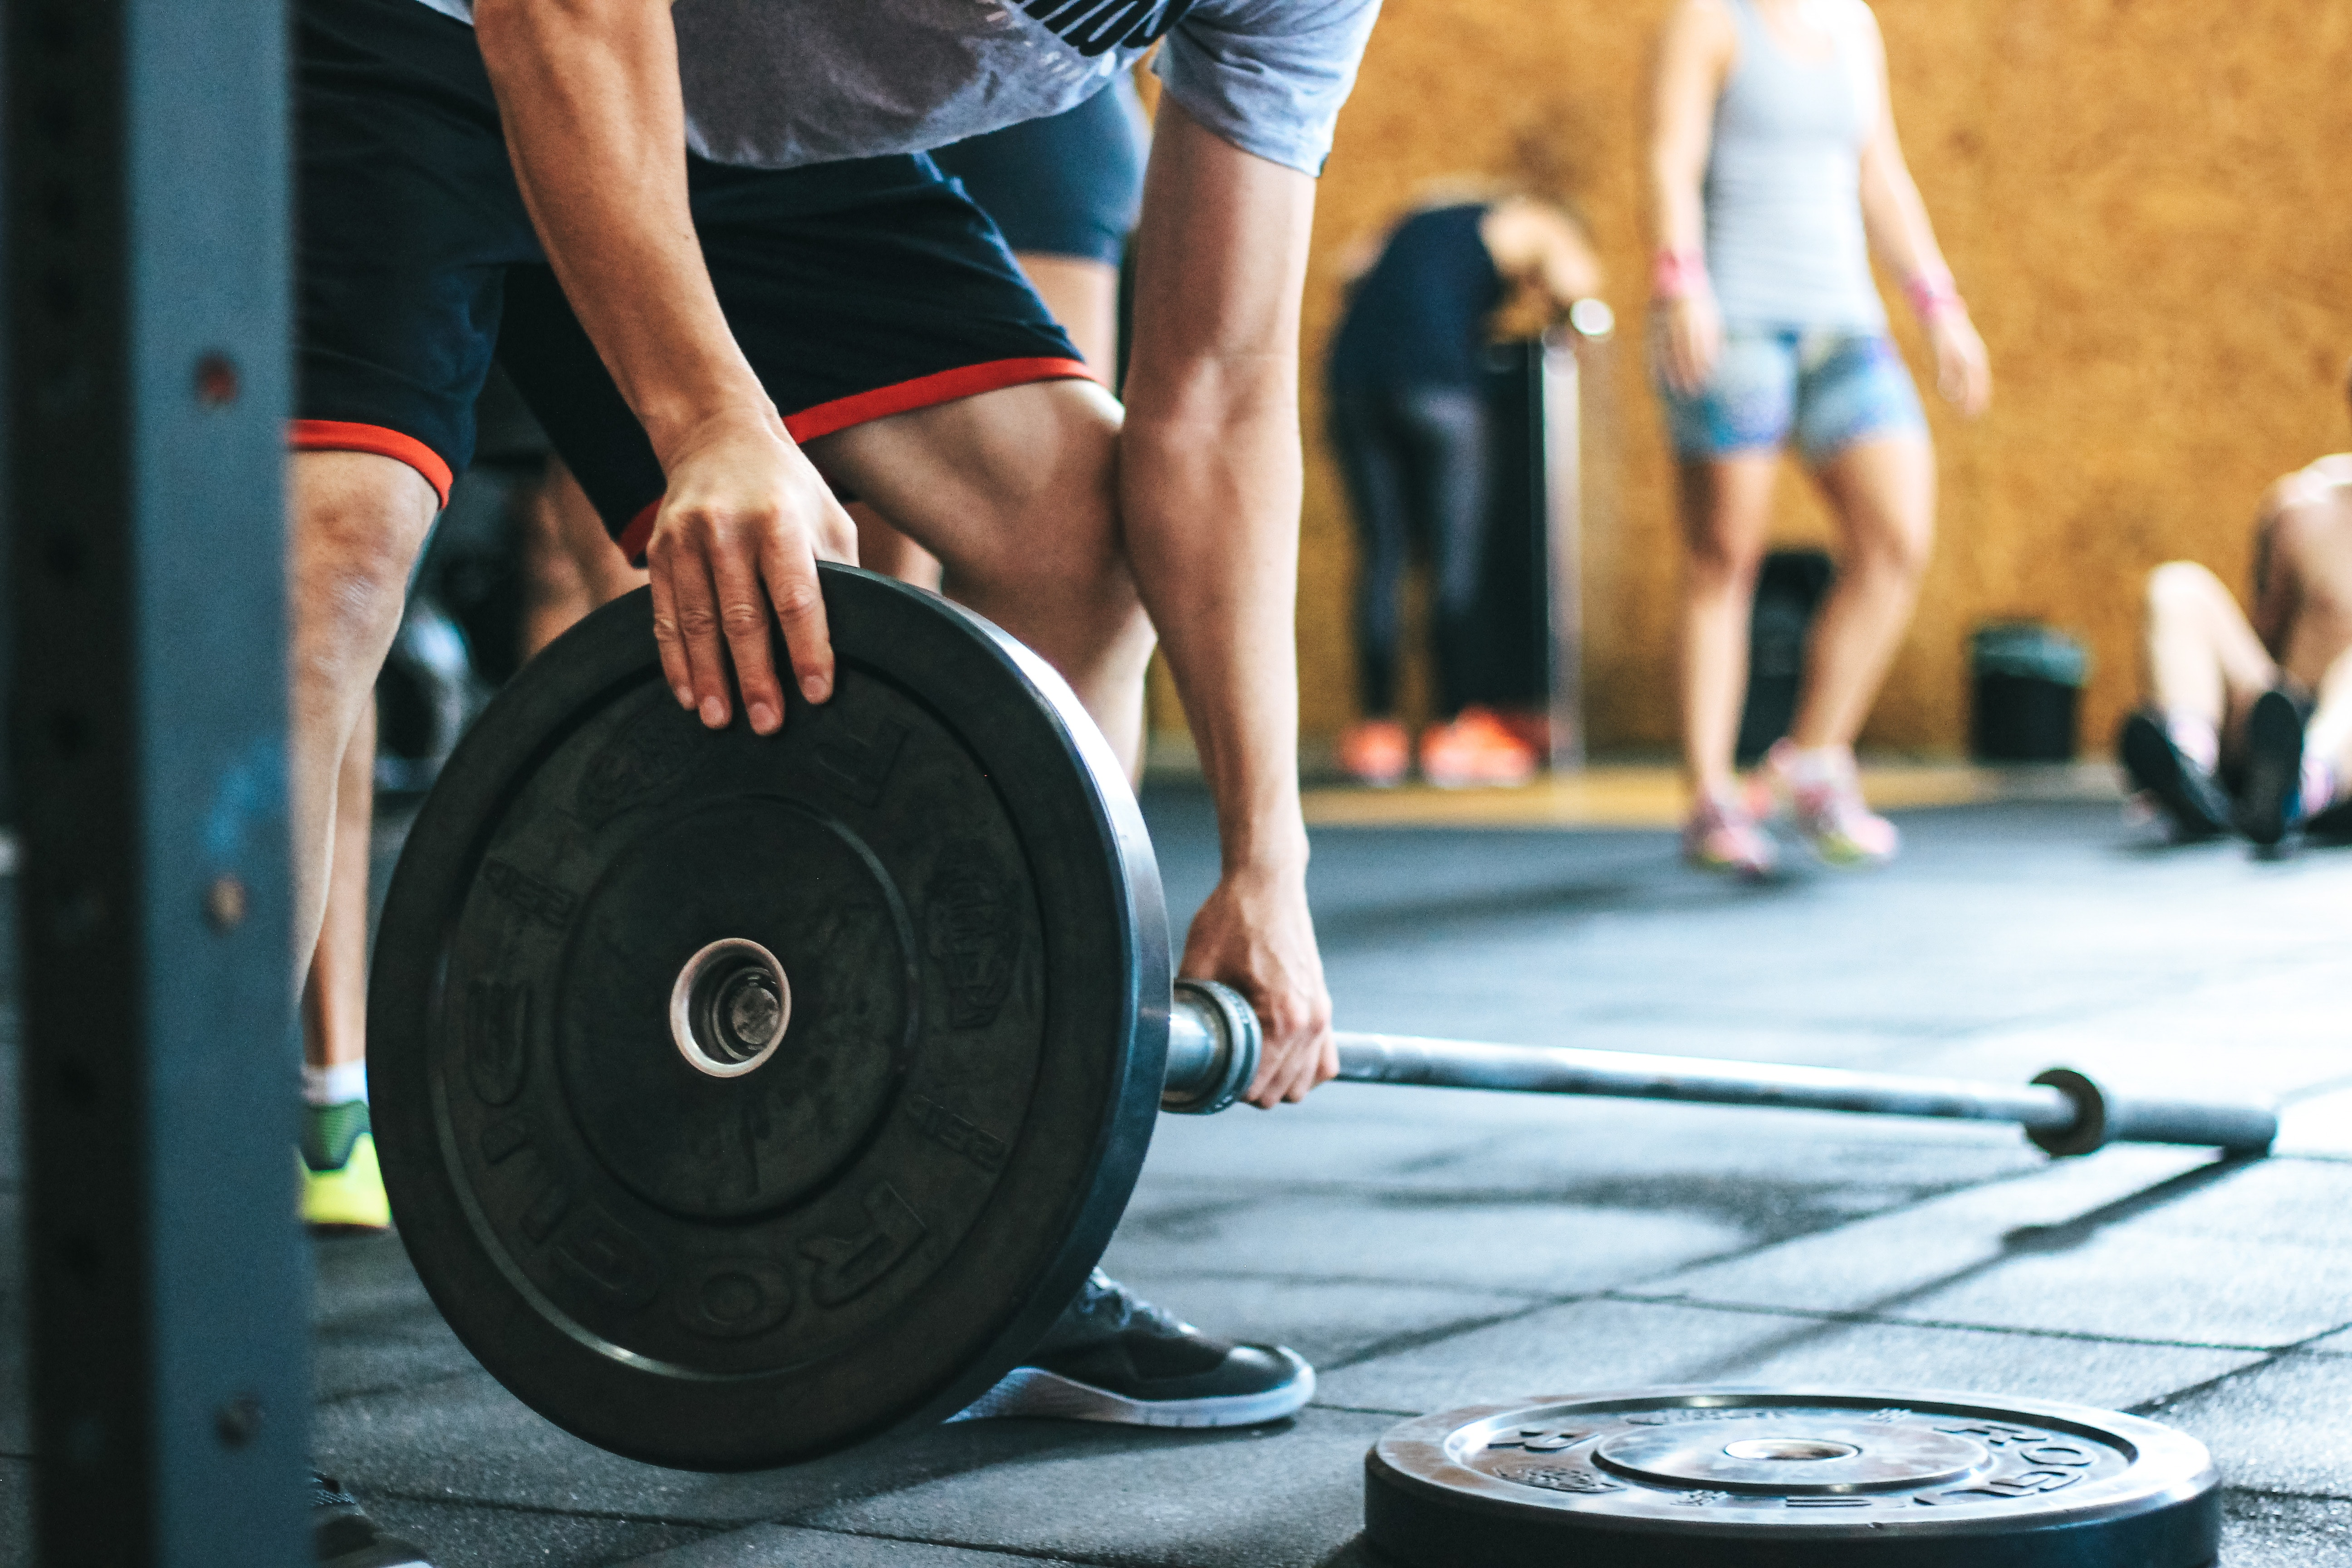 Man Holding Black Barbell, Active, Indoors, Weights, Weightlifting, HQ Photo